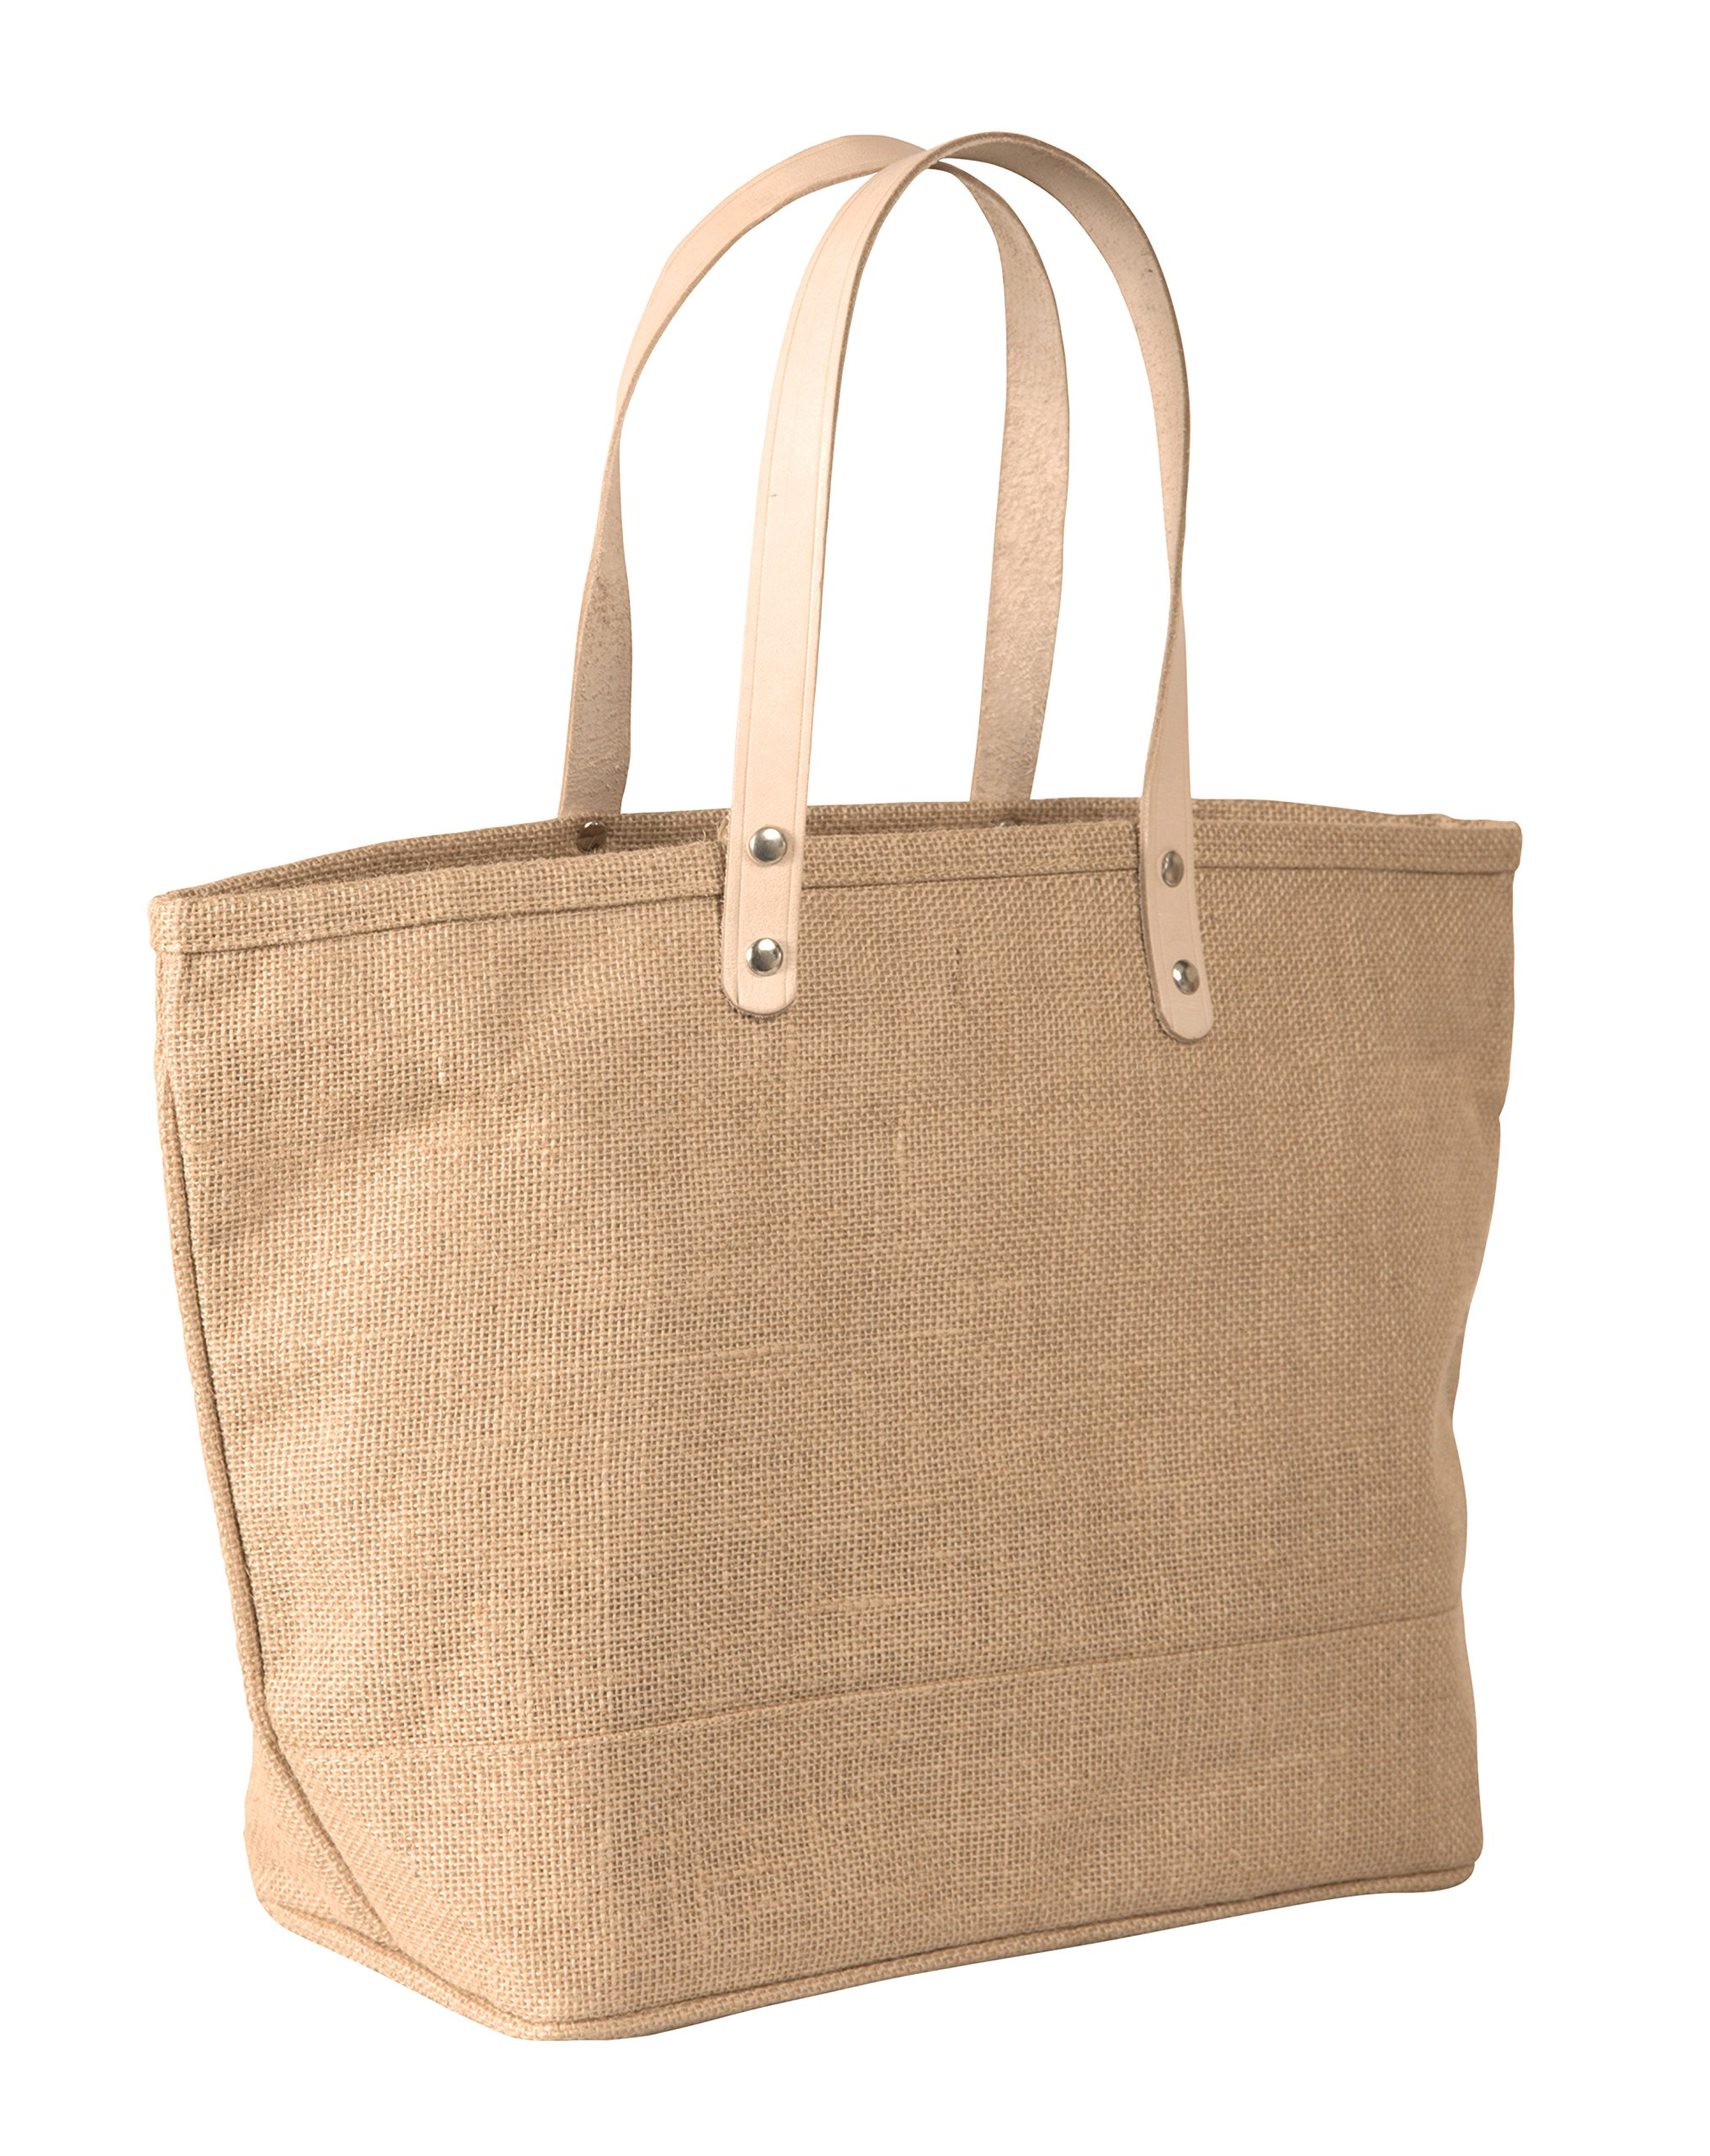 Pack of 6- Small Jute Tote bag with Leather Handles Size 17.25''W x 10.5''H x 5.5'' Gusset in Natural Color - CarrygreenBags by CarryGreen